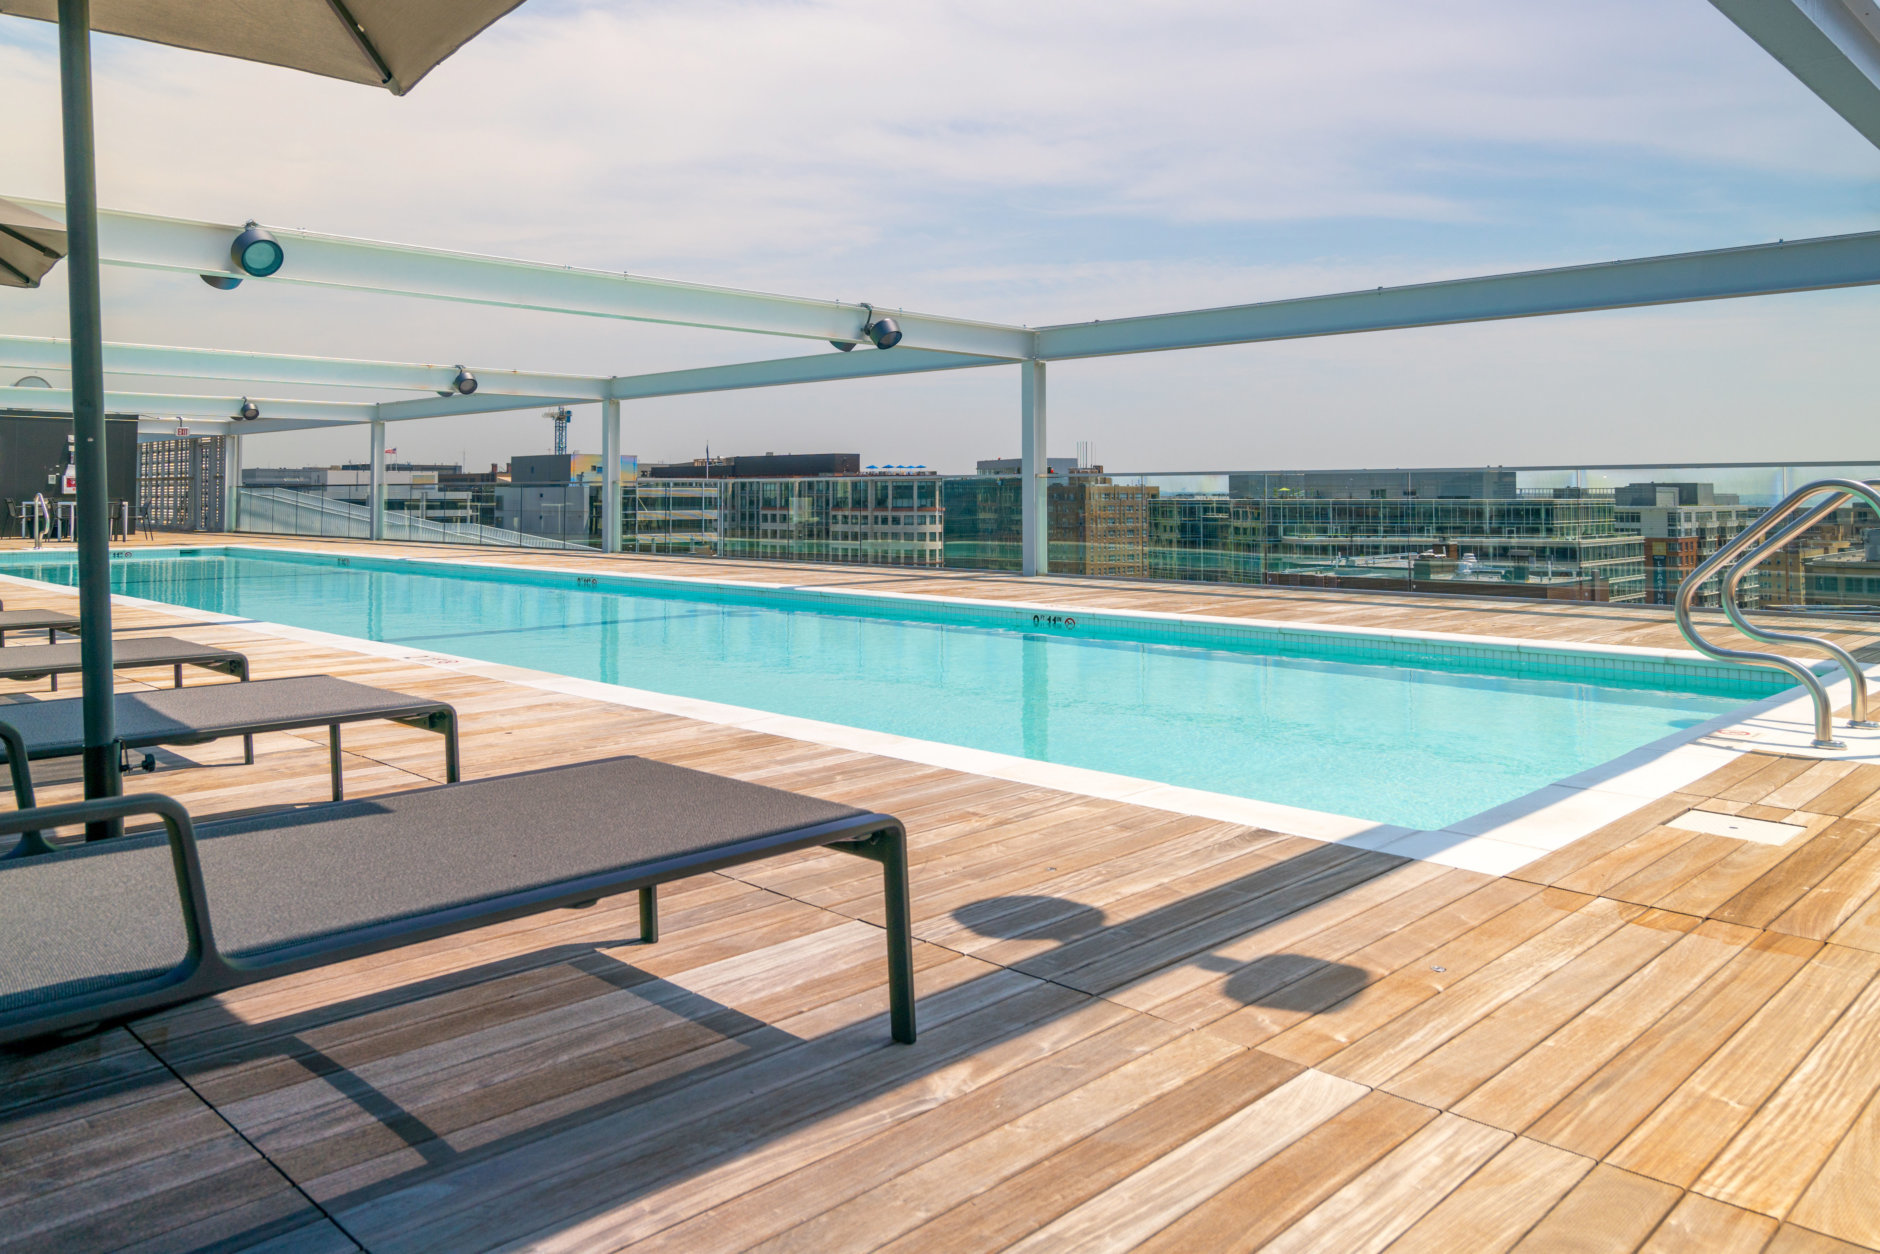 The Apartments at Westlight includes a 25-meter heated rooftop pool, sun deck, fitness center, private club room, business center and underground parking garage. (Courtesy Eastbanc)